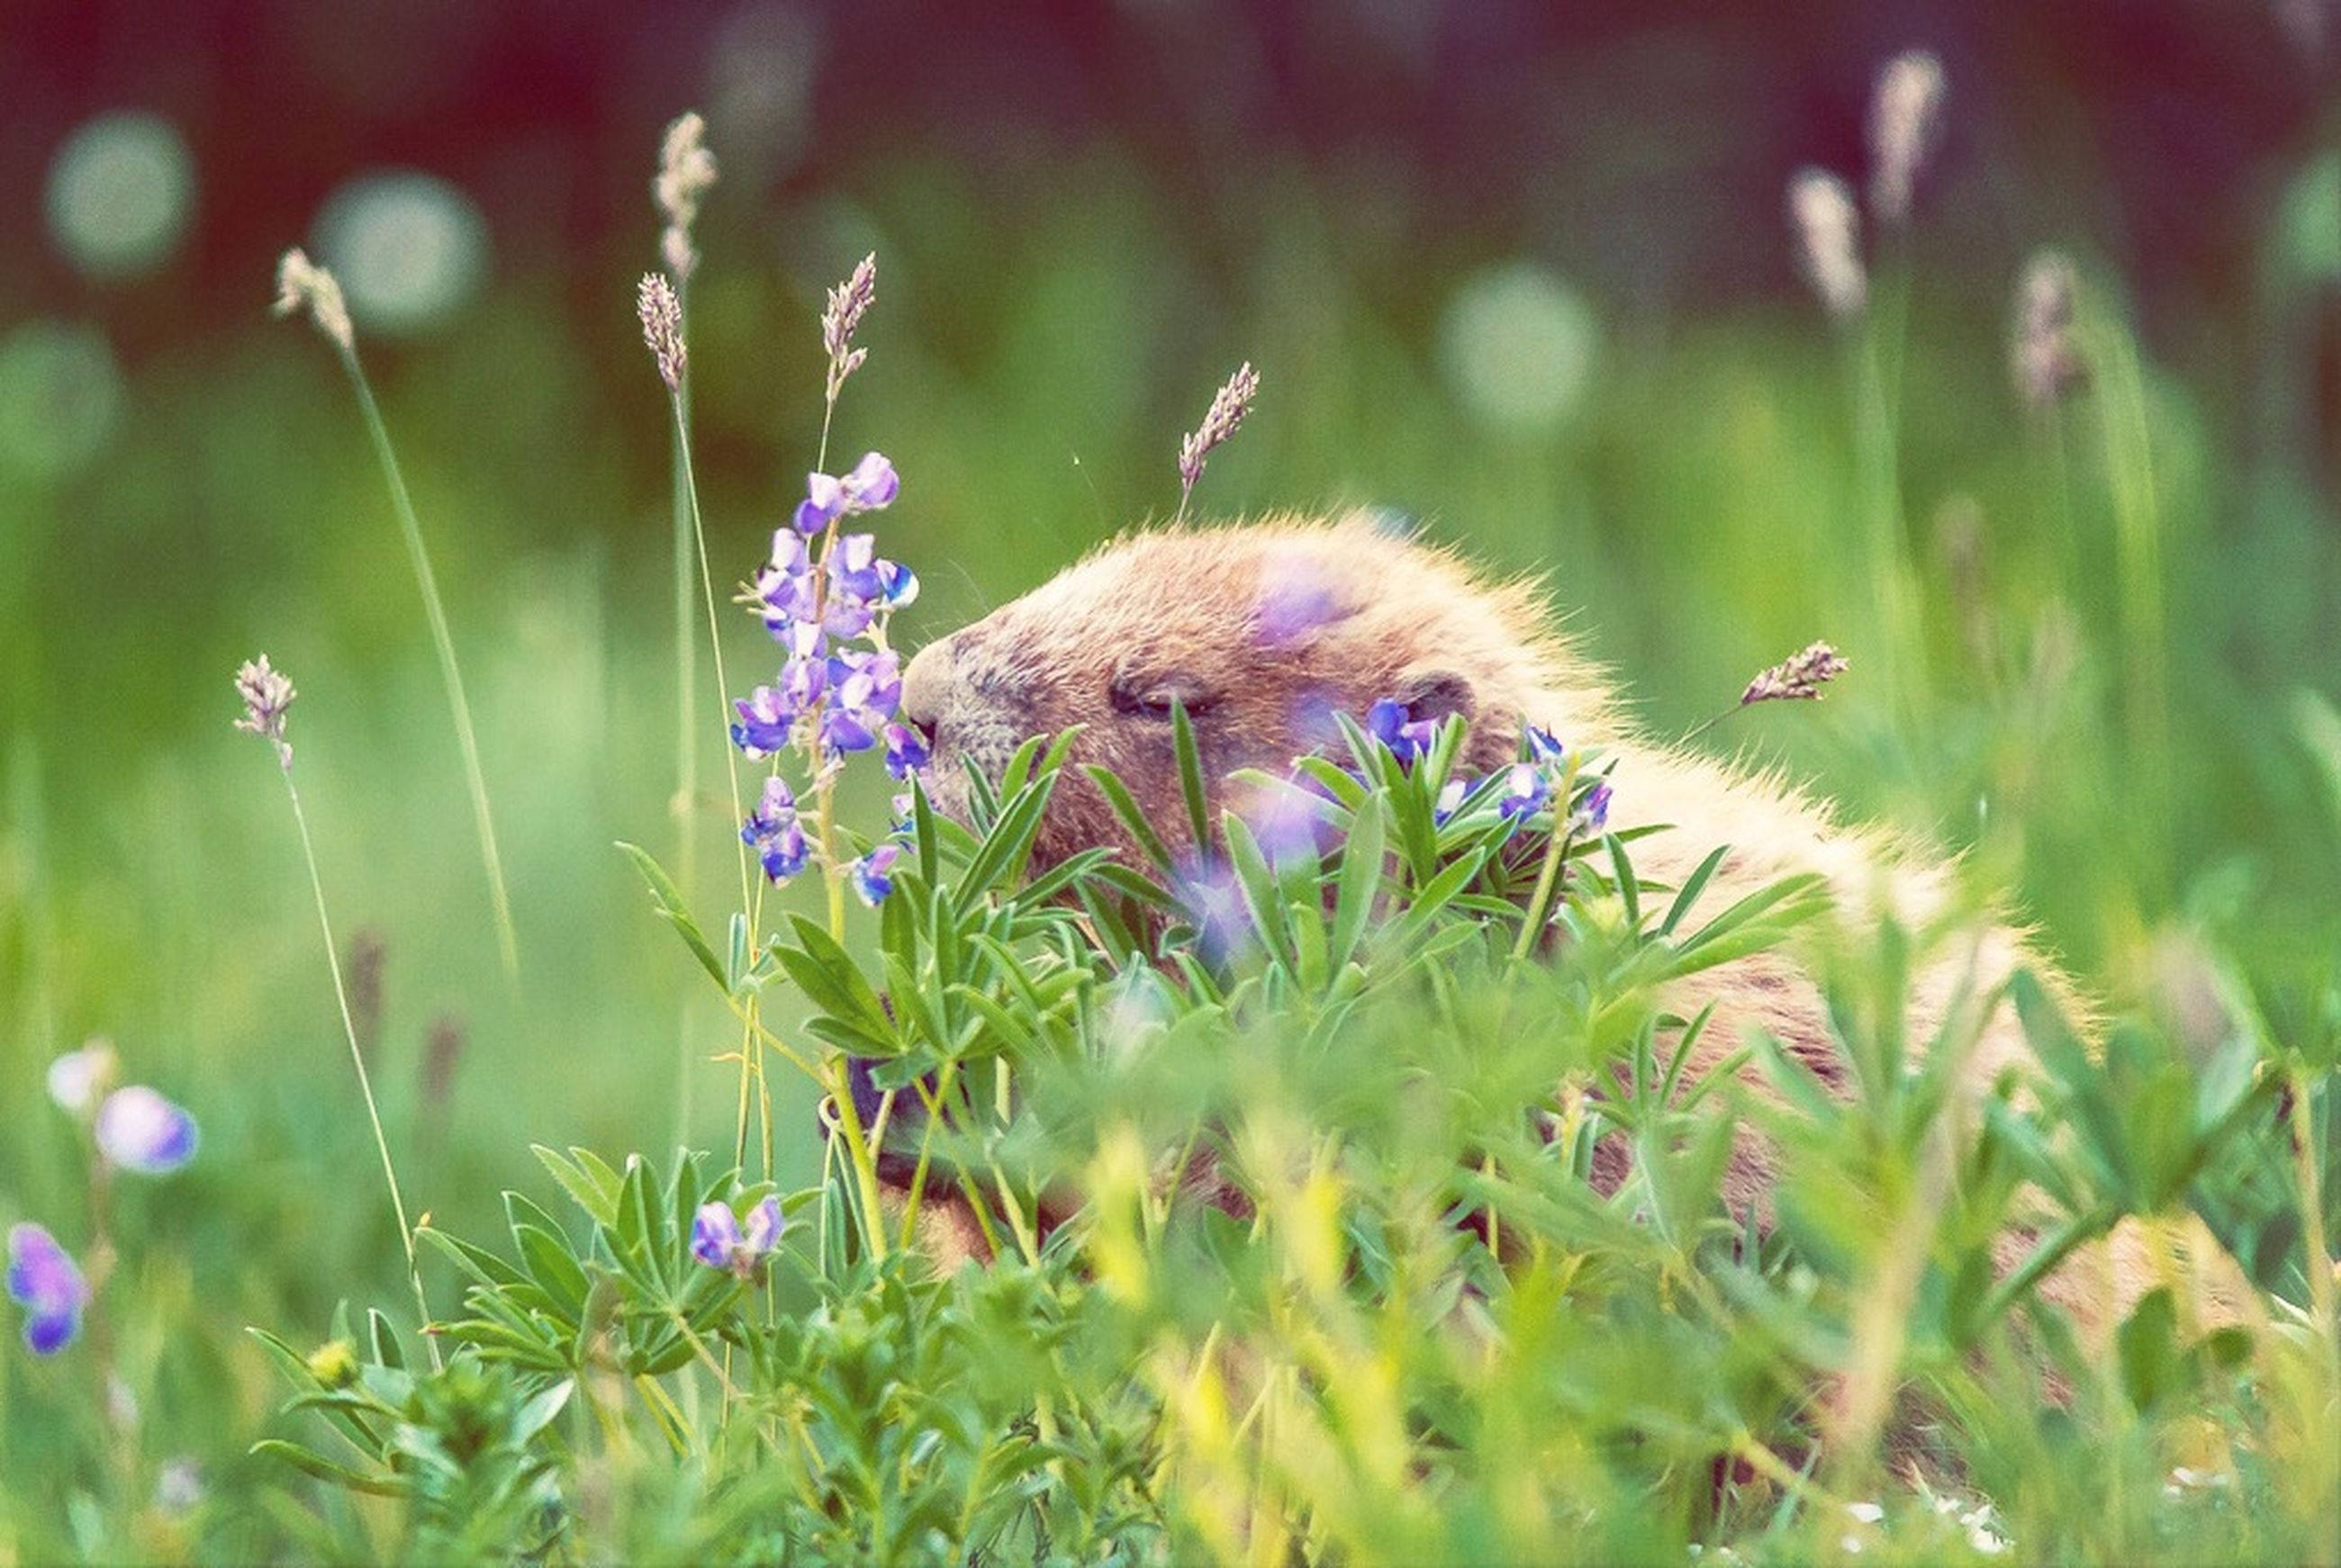 flower, growth, fragility, freshness, animal themes, plant, beauty in nature, one animal, focus on foreground, nature, selective focus, close-up, purple, animals in the wild, stem, green color, wildflower, wildlife, blooming, flower head